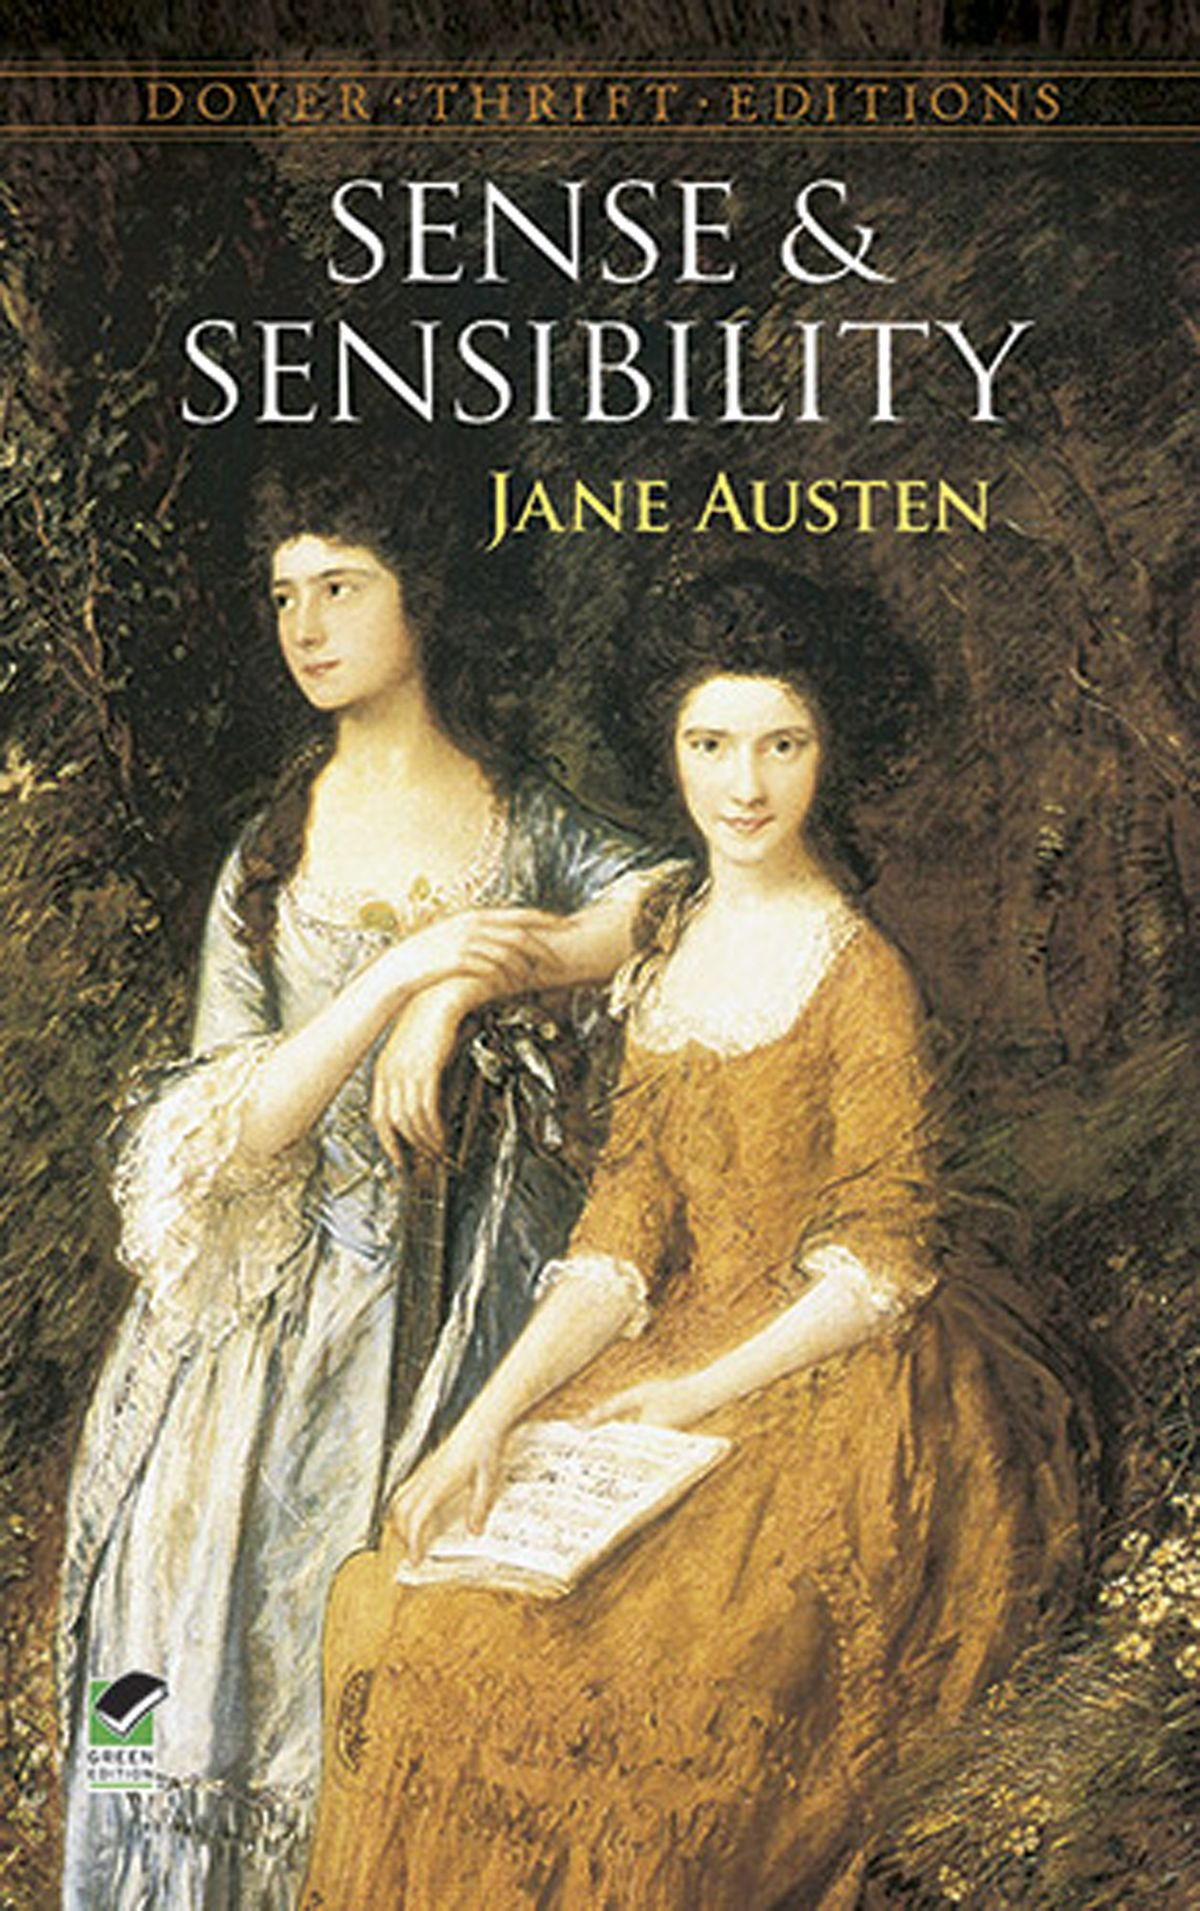 the important role of duality in sense and sensibility a novel by jane austen It is by the corruption of sense and of sensibility that the ideal of marriage in jane austen's novels is destroyed as the novel shows, the corru.